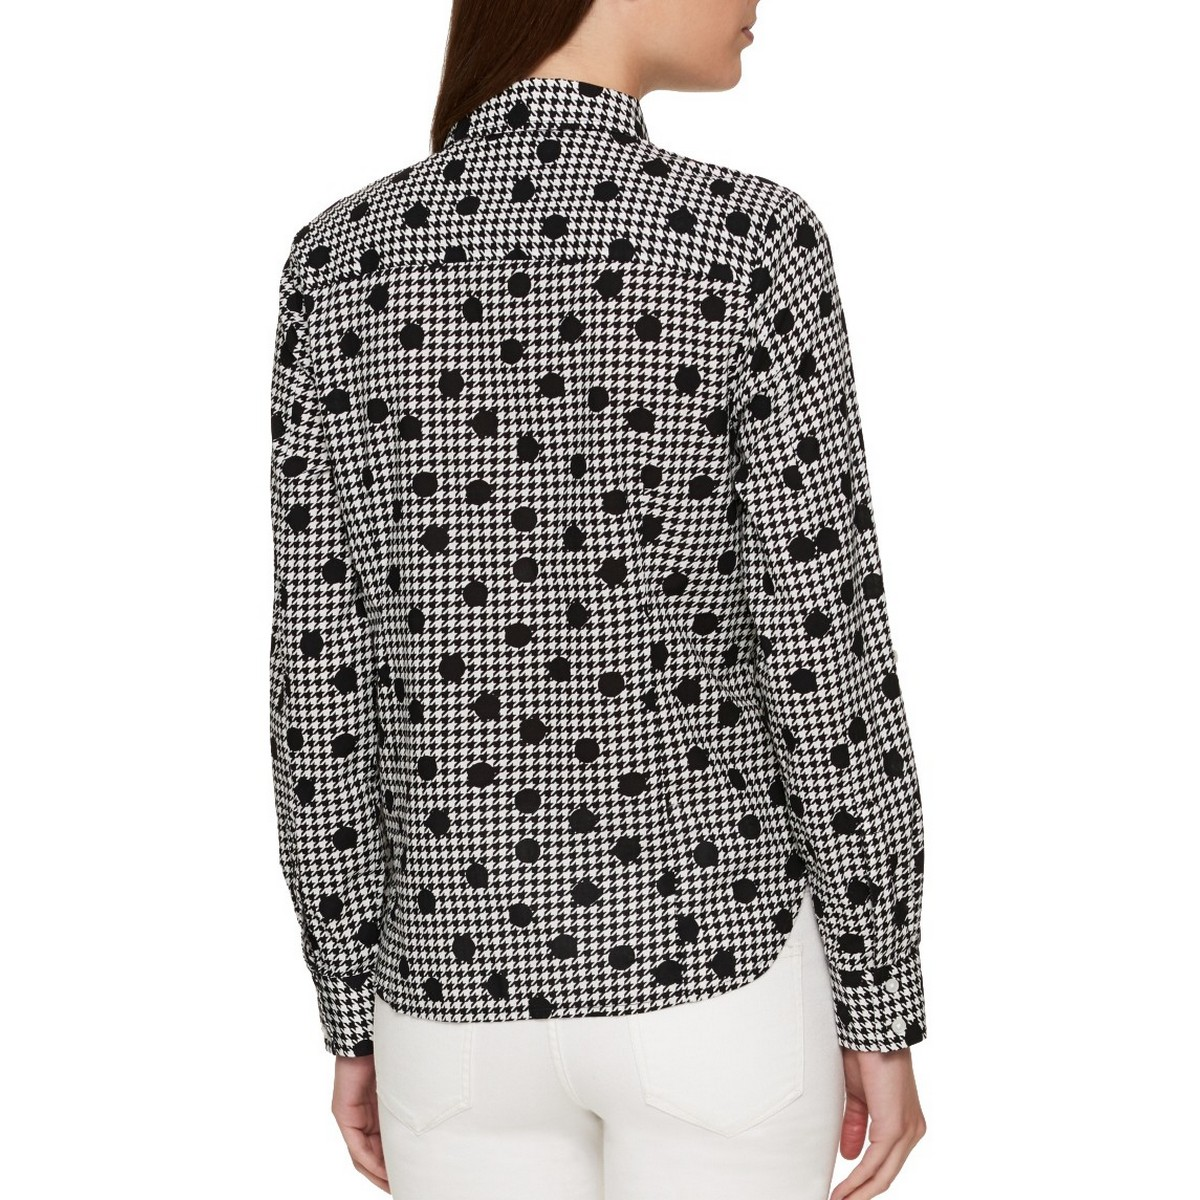 TOMMY-HILFIGER-NEW-Women-039-s-Printed-Utility-Button-Down-Shirt-Top-TEDO thumbnail 6